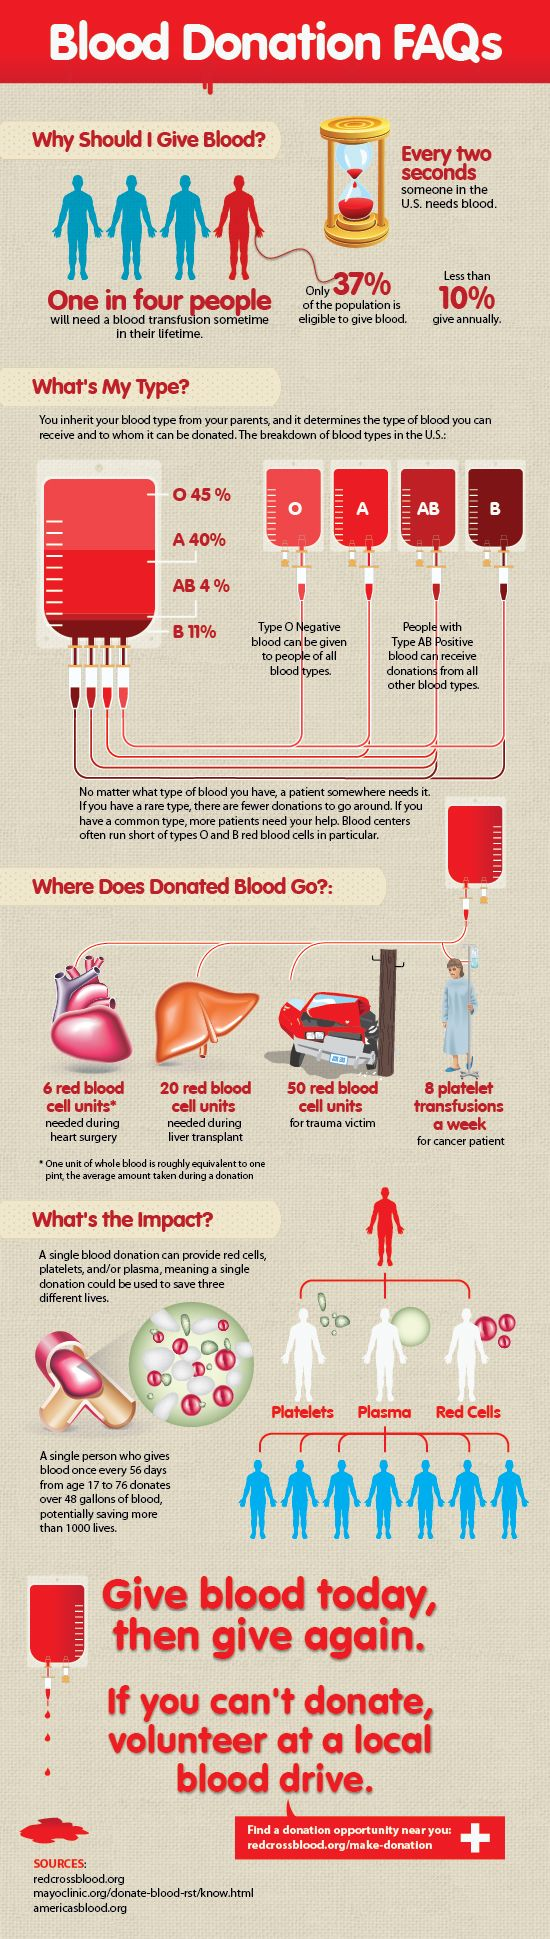 39 Catchy Blood Drive Campaign Slogans | American red cross, Blood ...